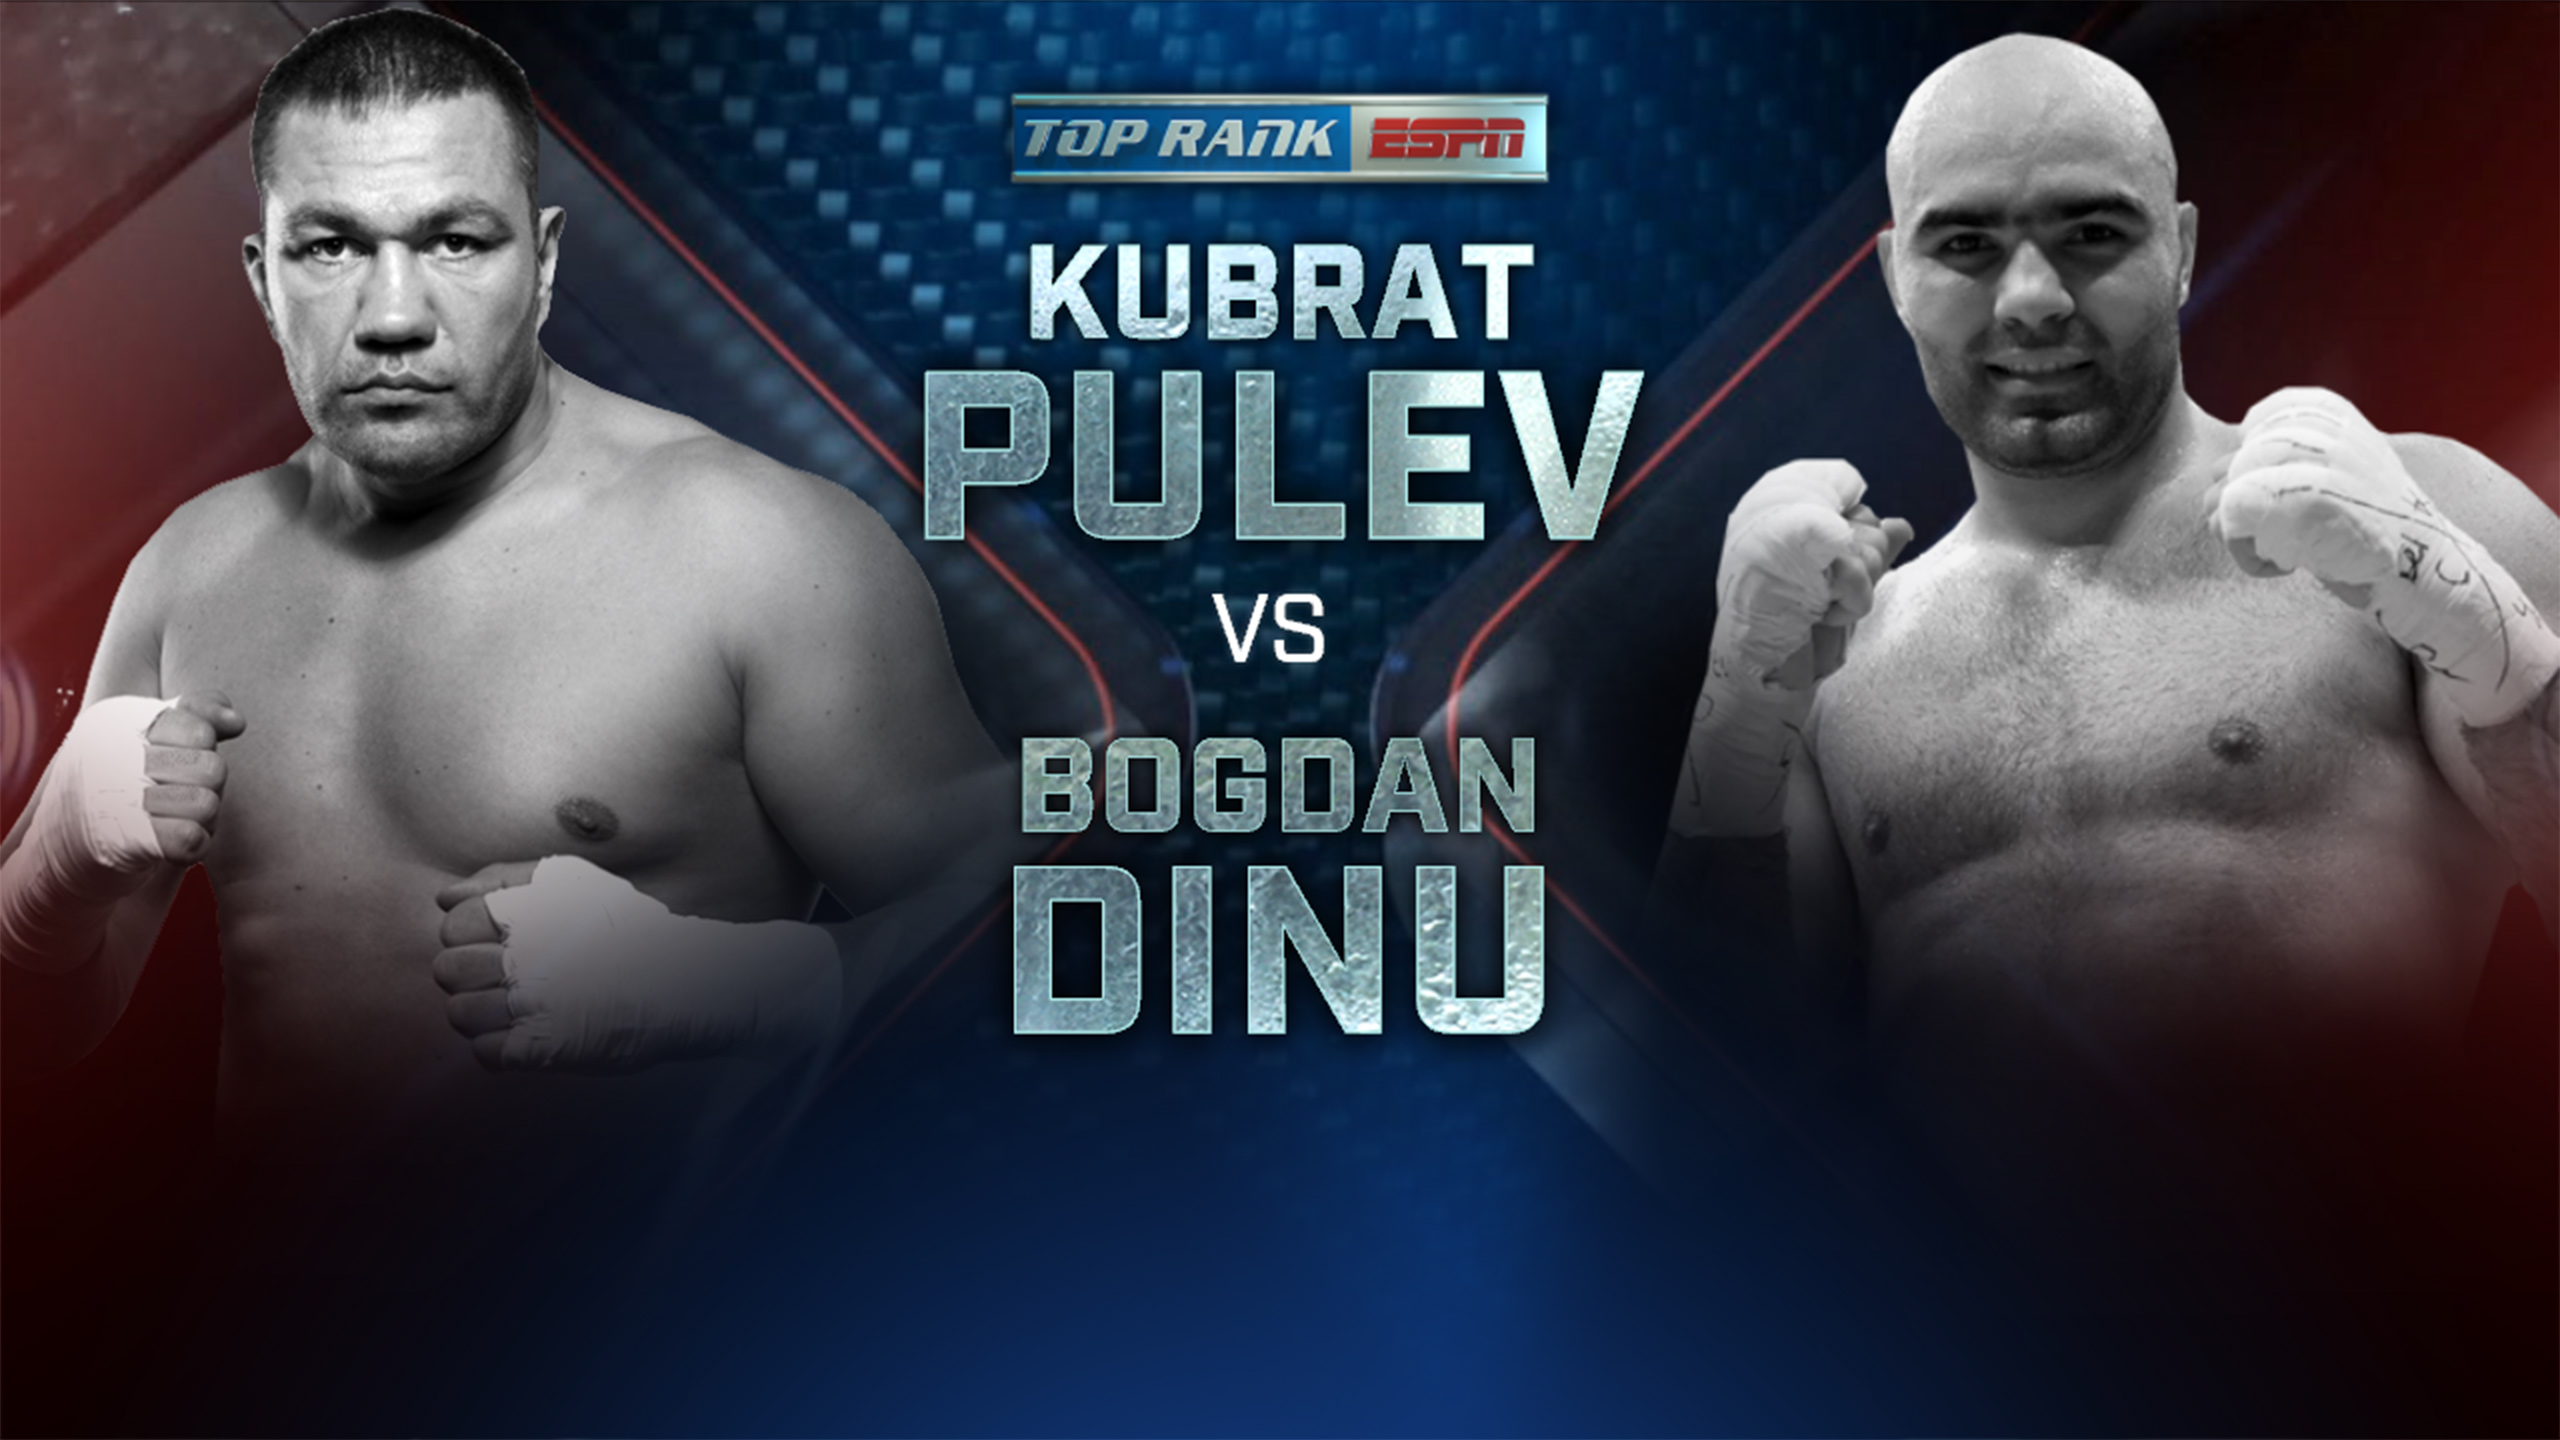 Kubrat Pulev vs. Bogdan Dinu (re-air)